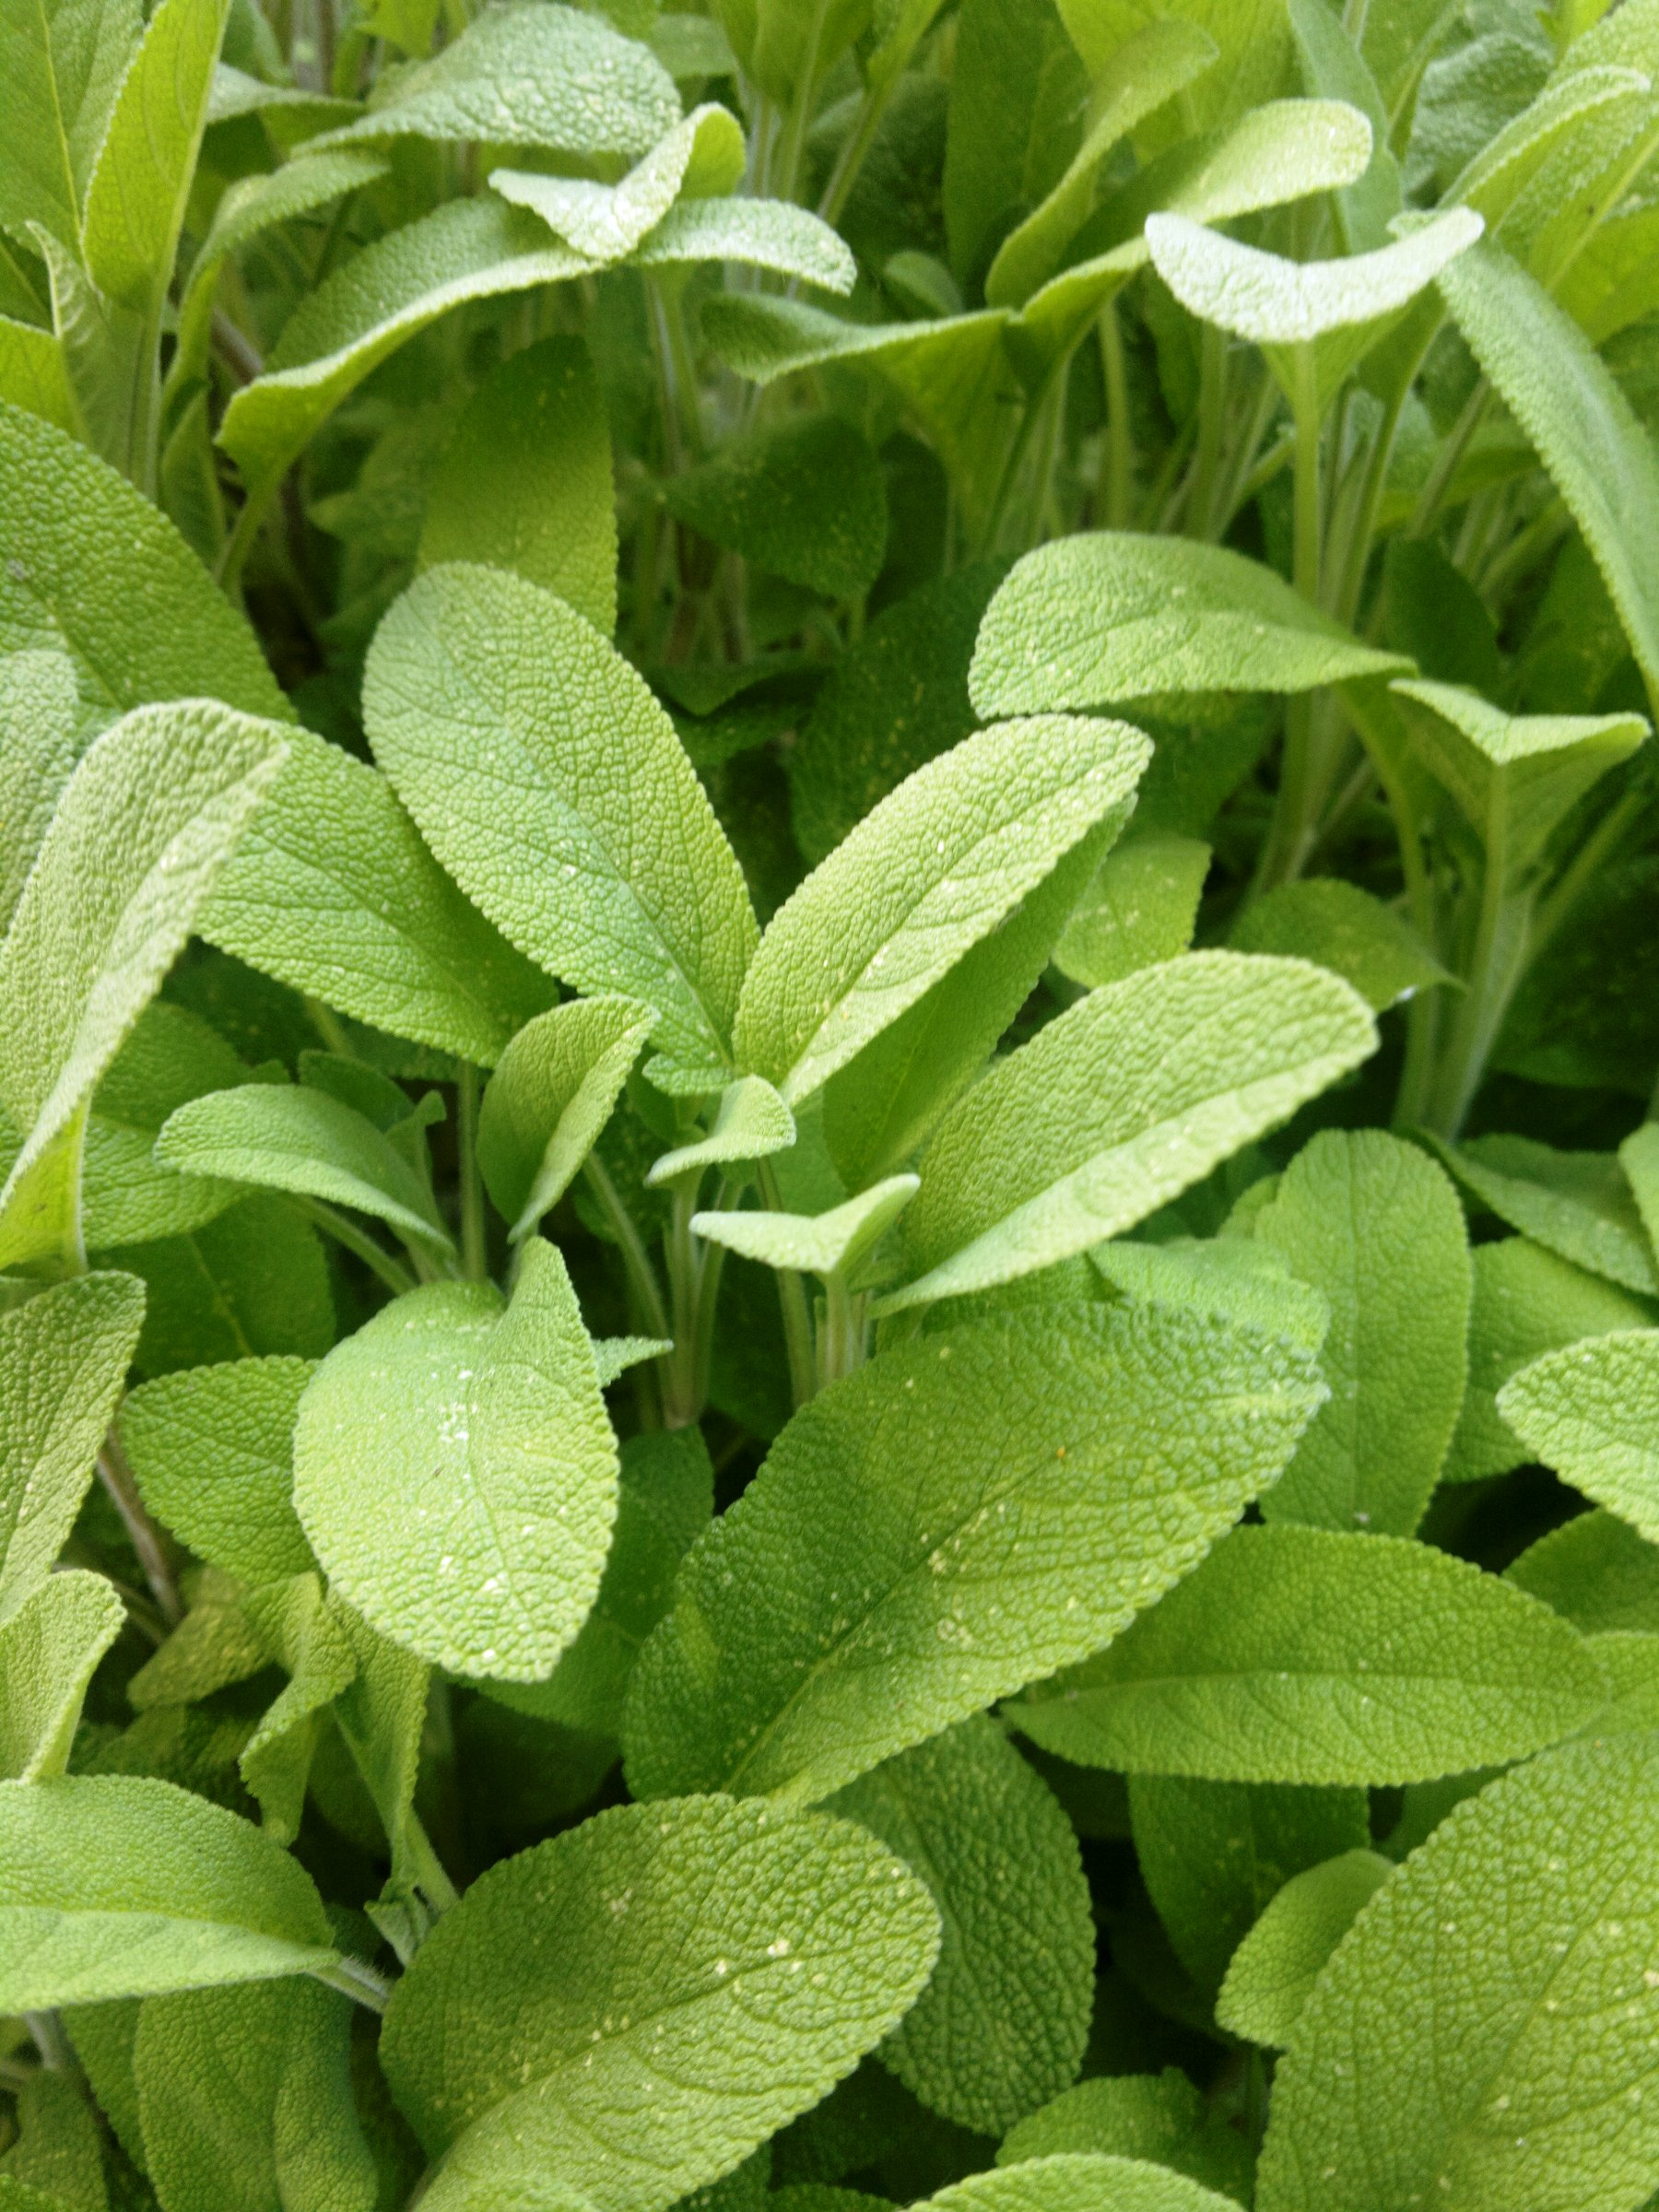 The vibrant leaves of fresh sage